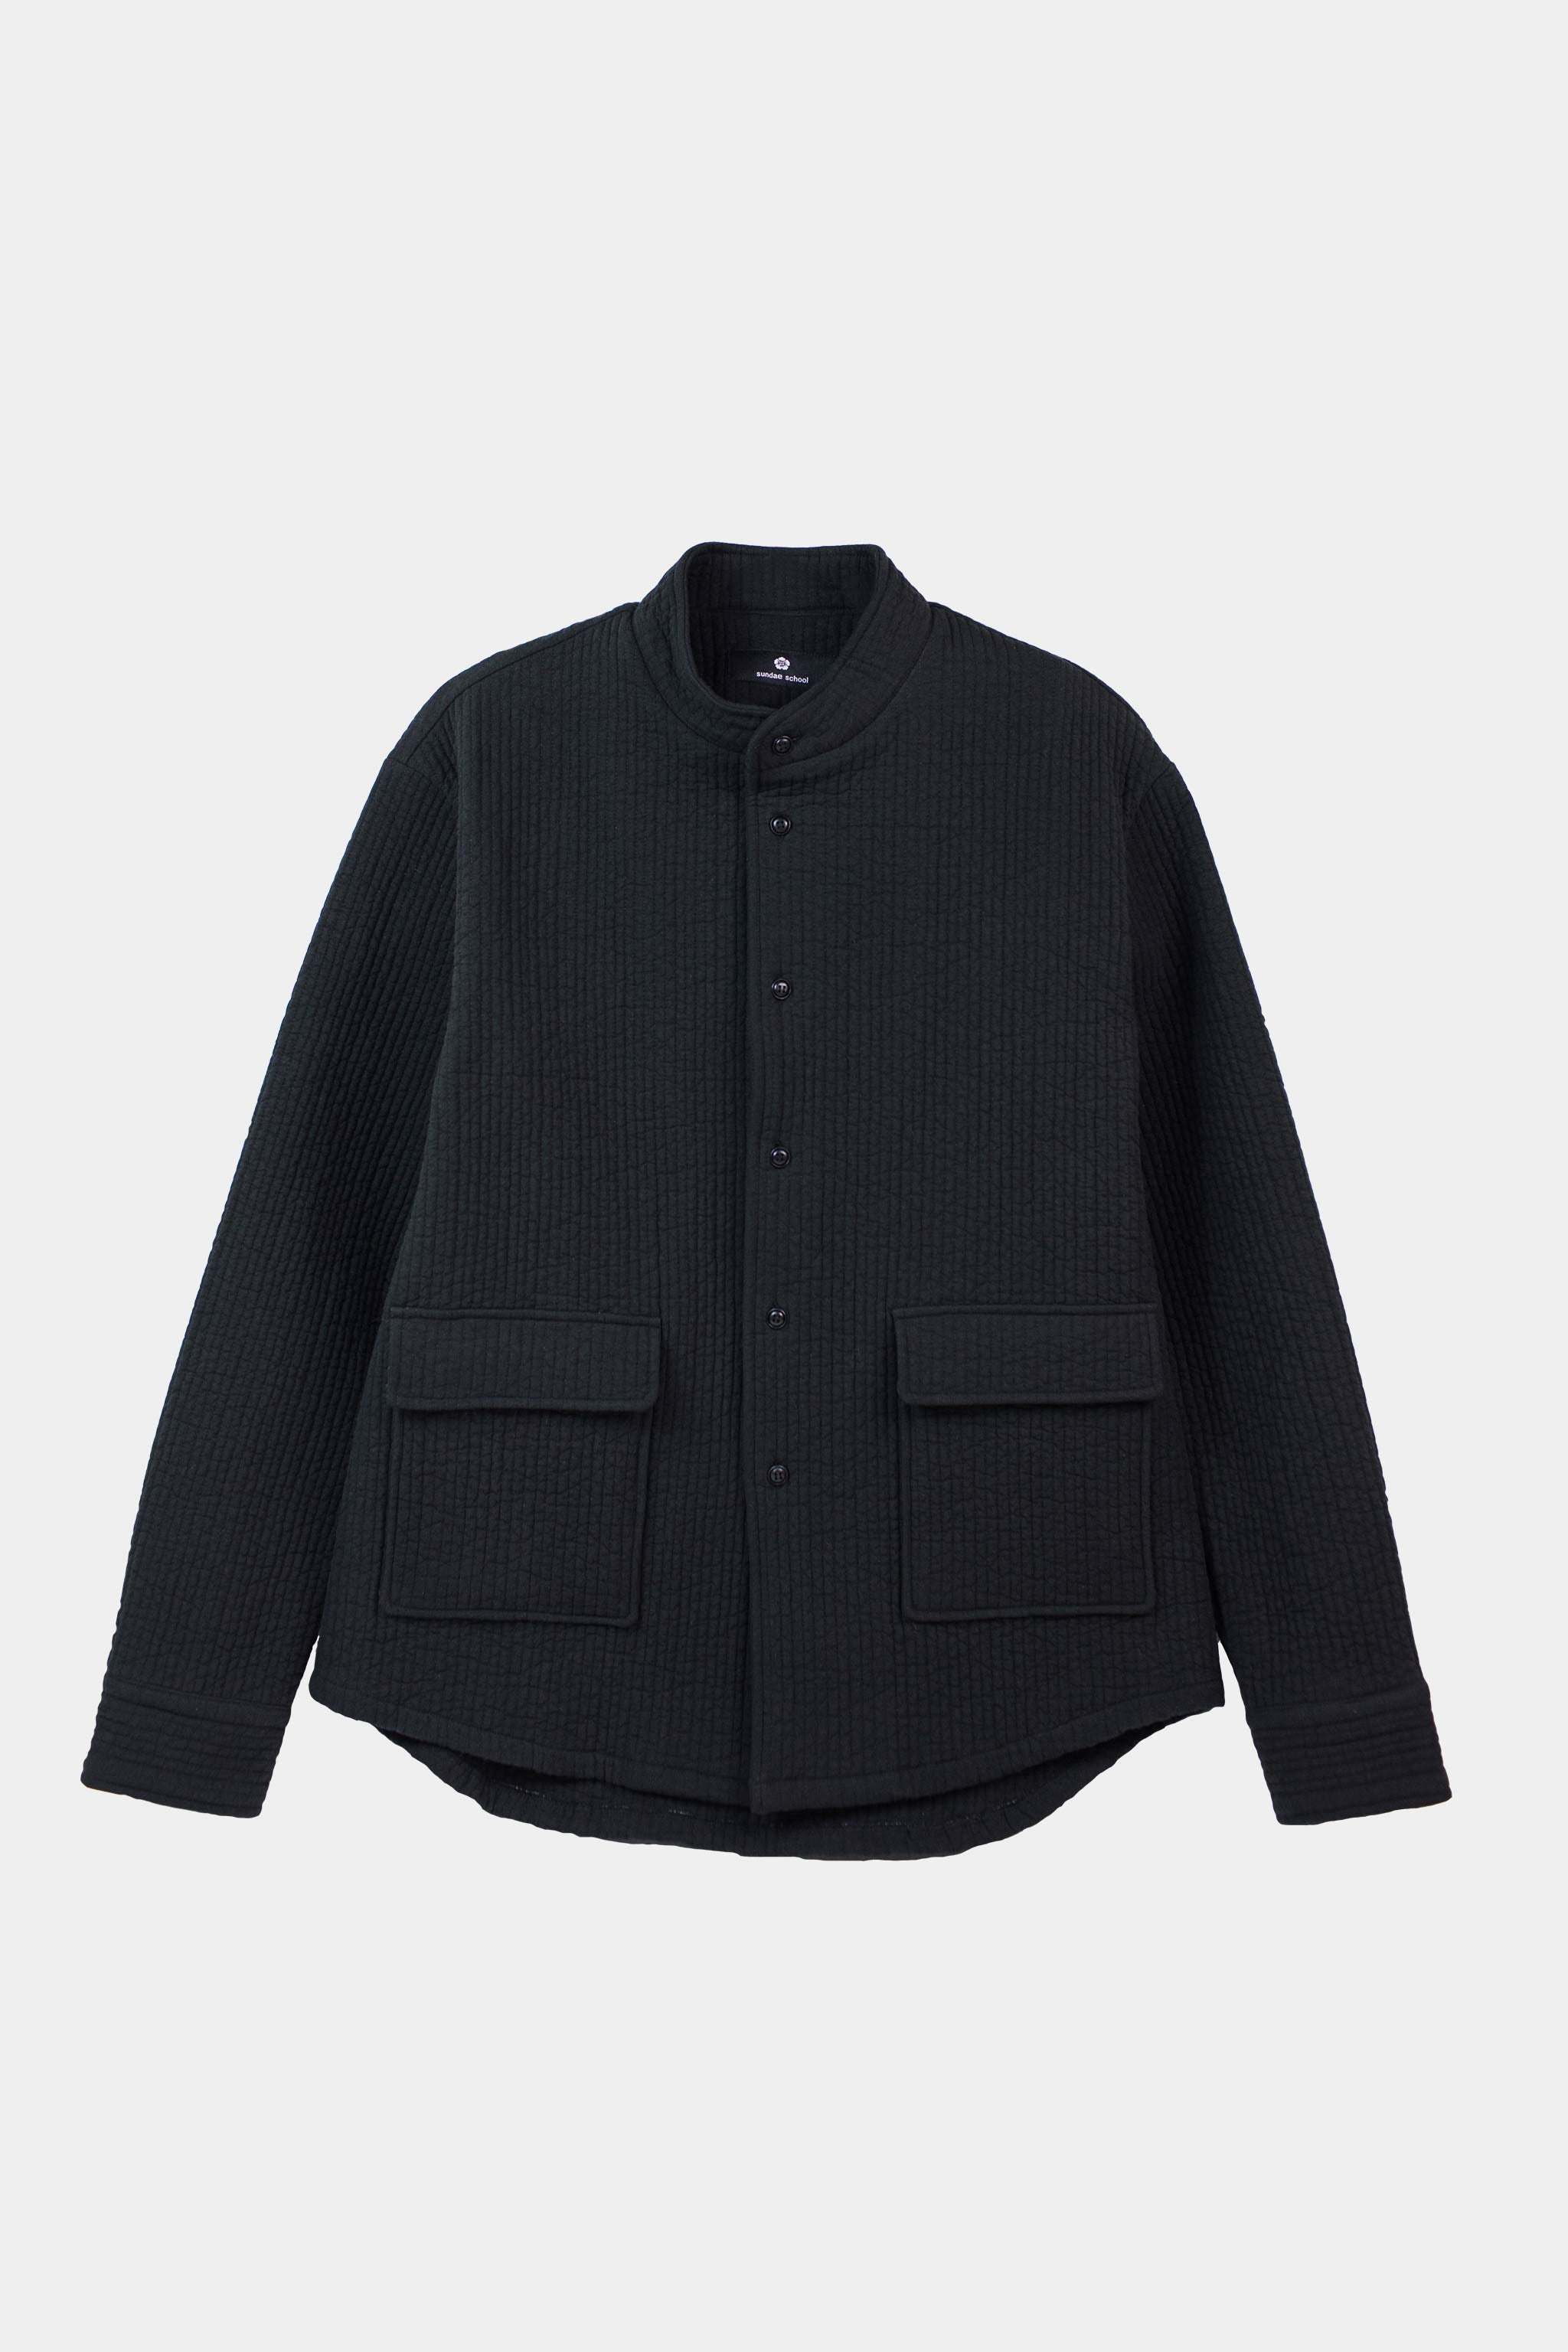 Nubi Monk Shirt / Black